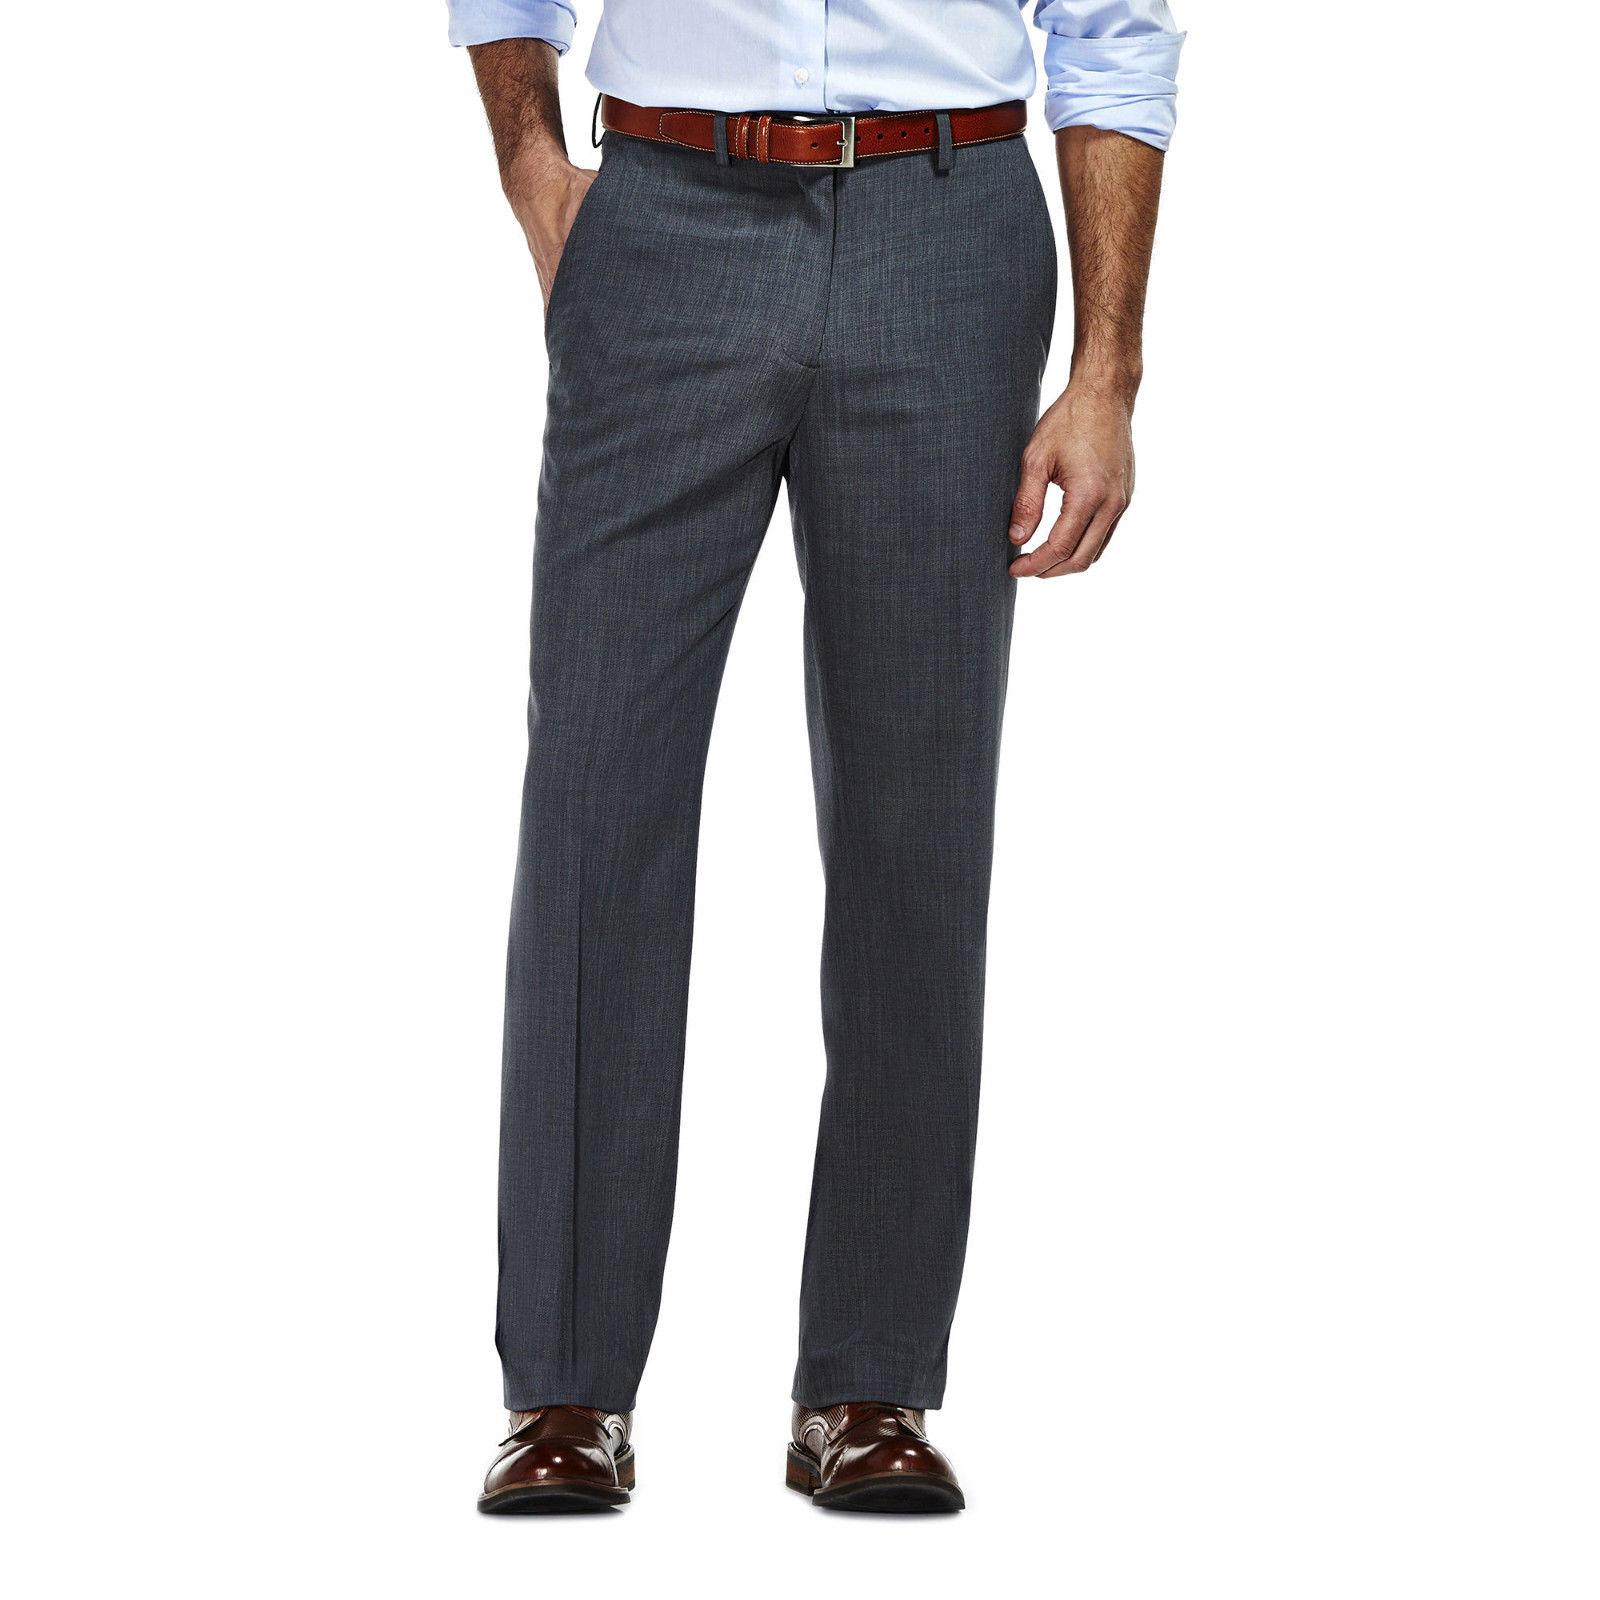 NEW Haggar Travel Suit Pants Graphit Tailored $100